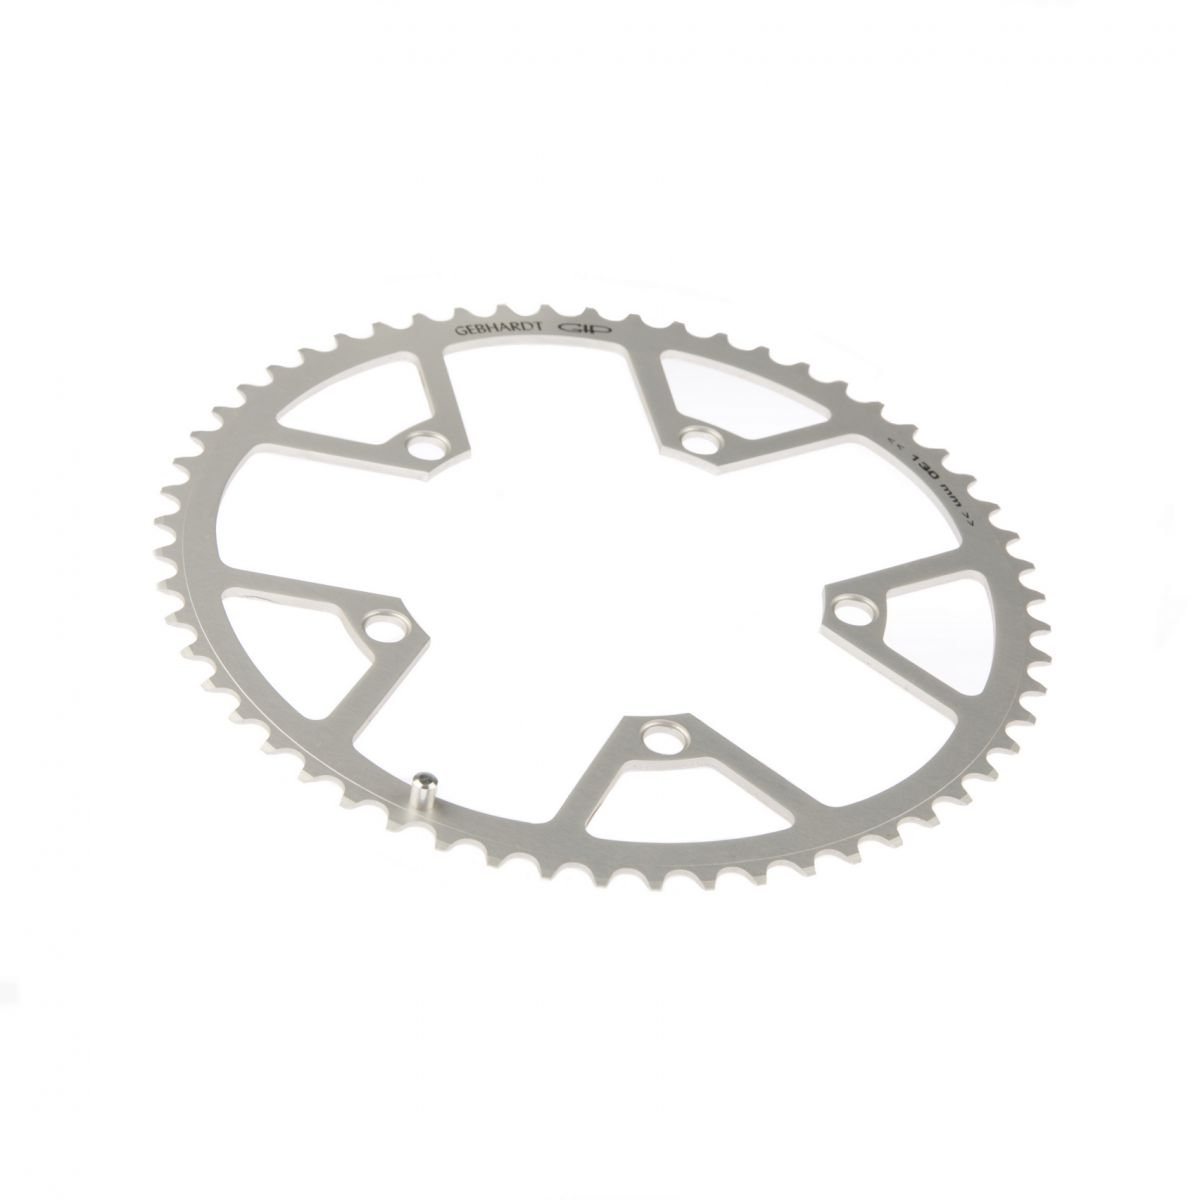 gebhardt chainring classic bcd 130 mm 5hole 49t silver